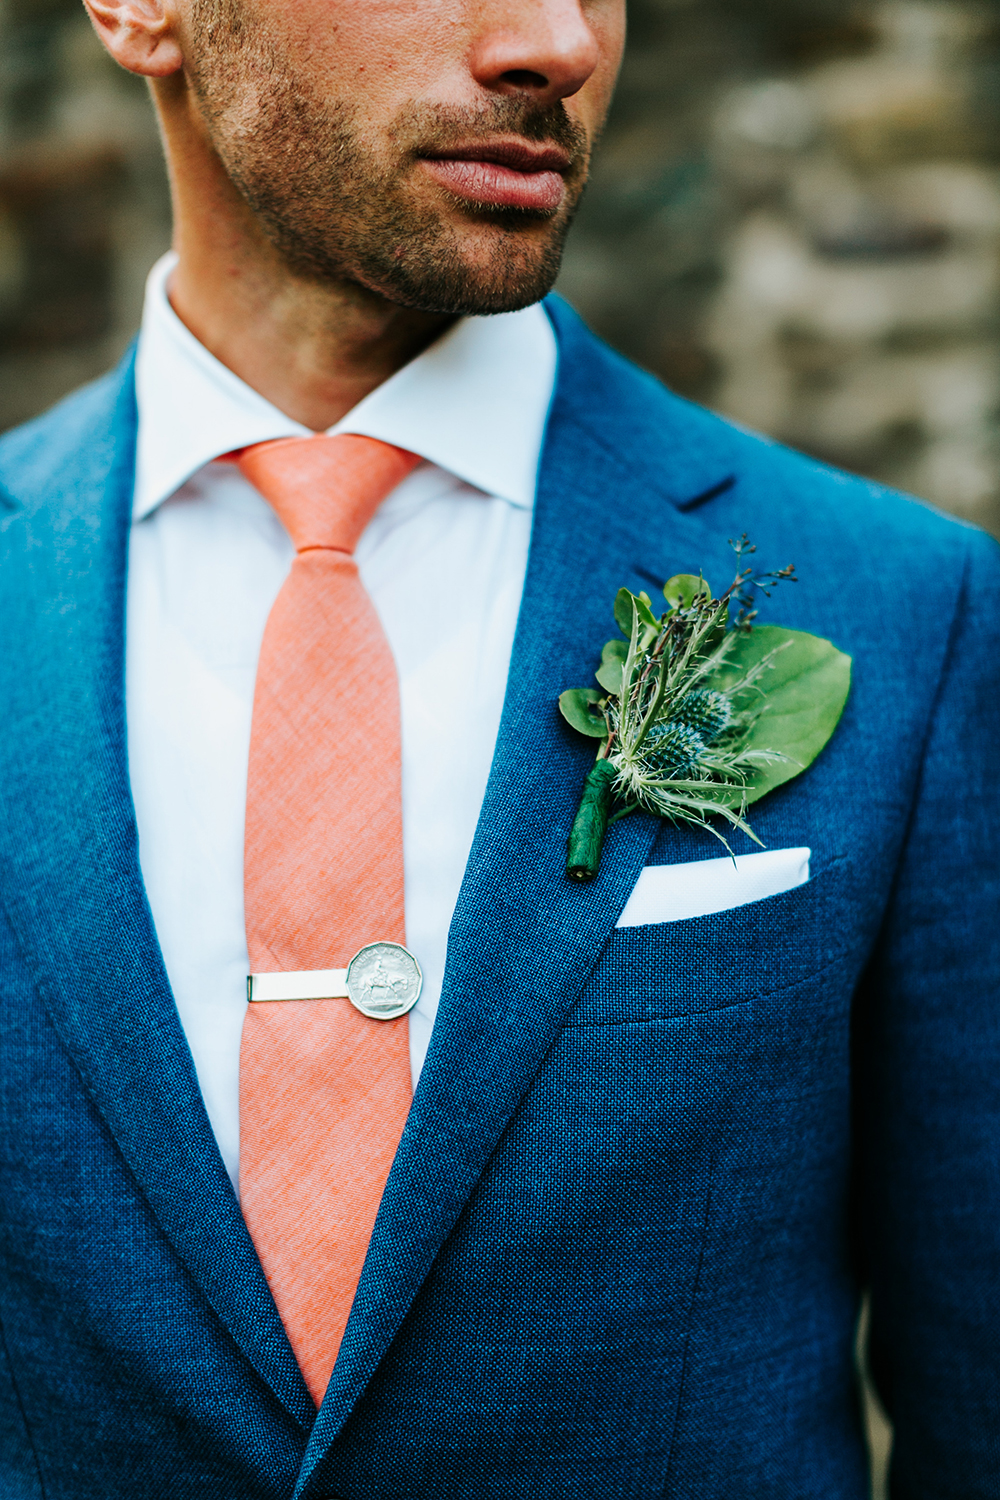 This Anatomy-Inspired Wedding Will Tug at Your Heartstrings - photo by danfredo photos and films http://ruffledblog.com/this-anatomy-inspired-wedding-will-tug-at-your-heartstrings